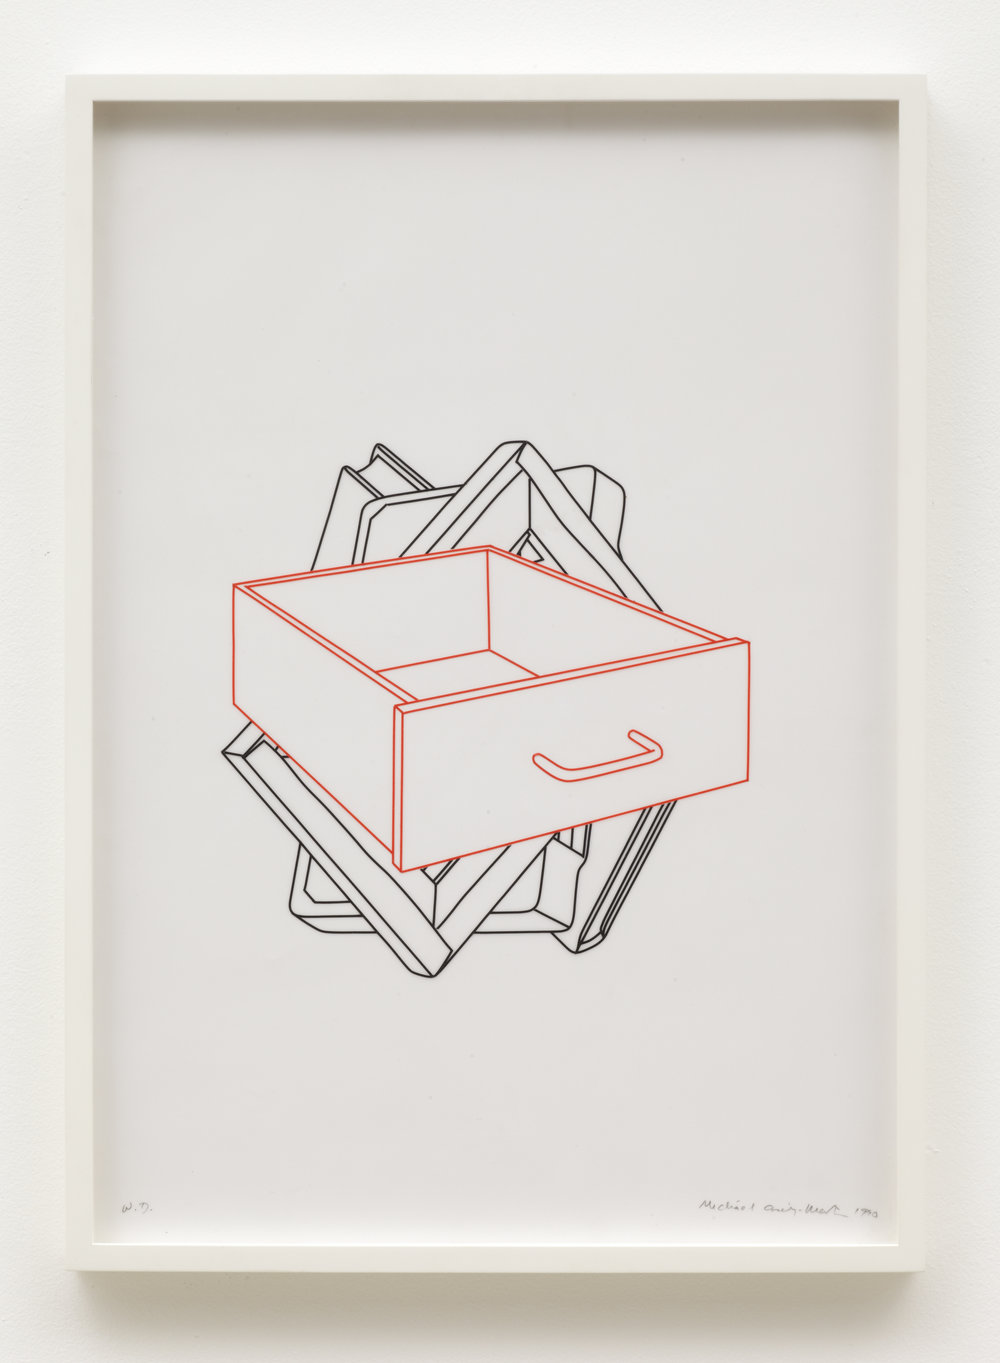 Study for Order of appearance (drawer)